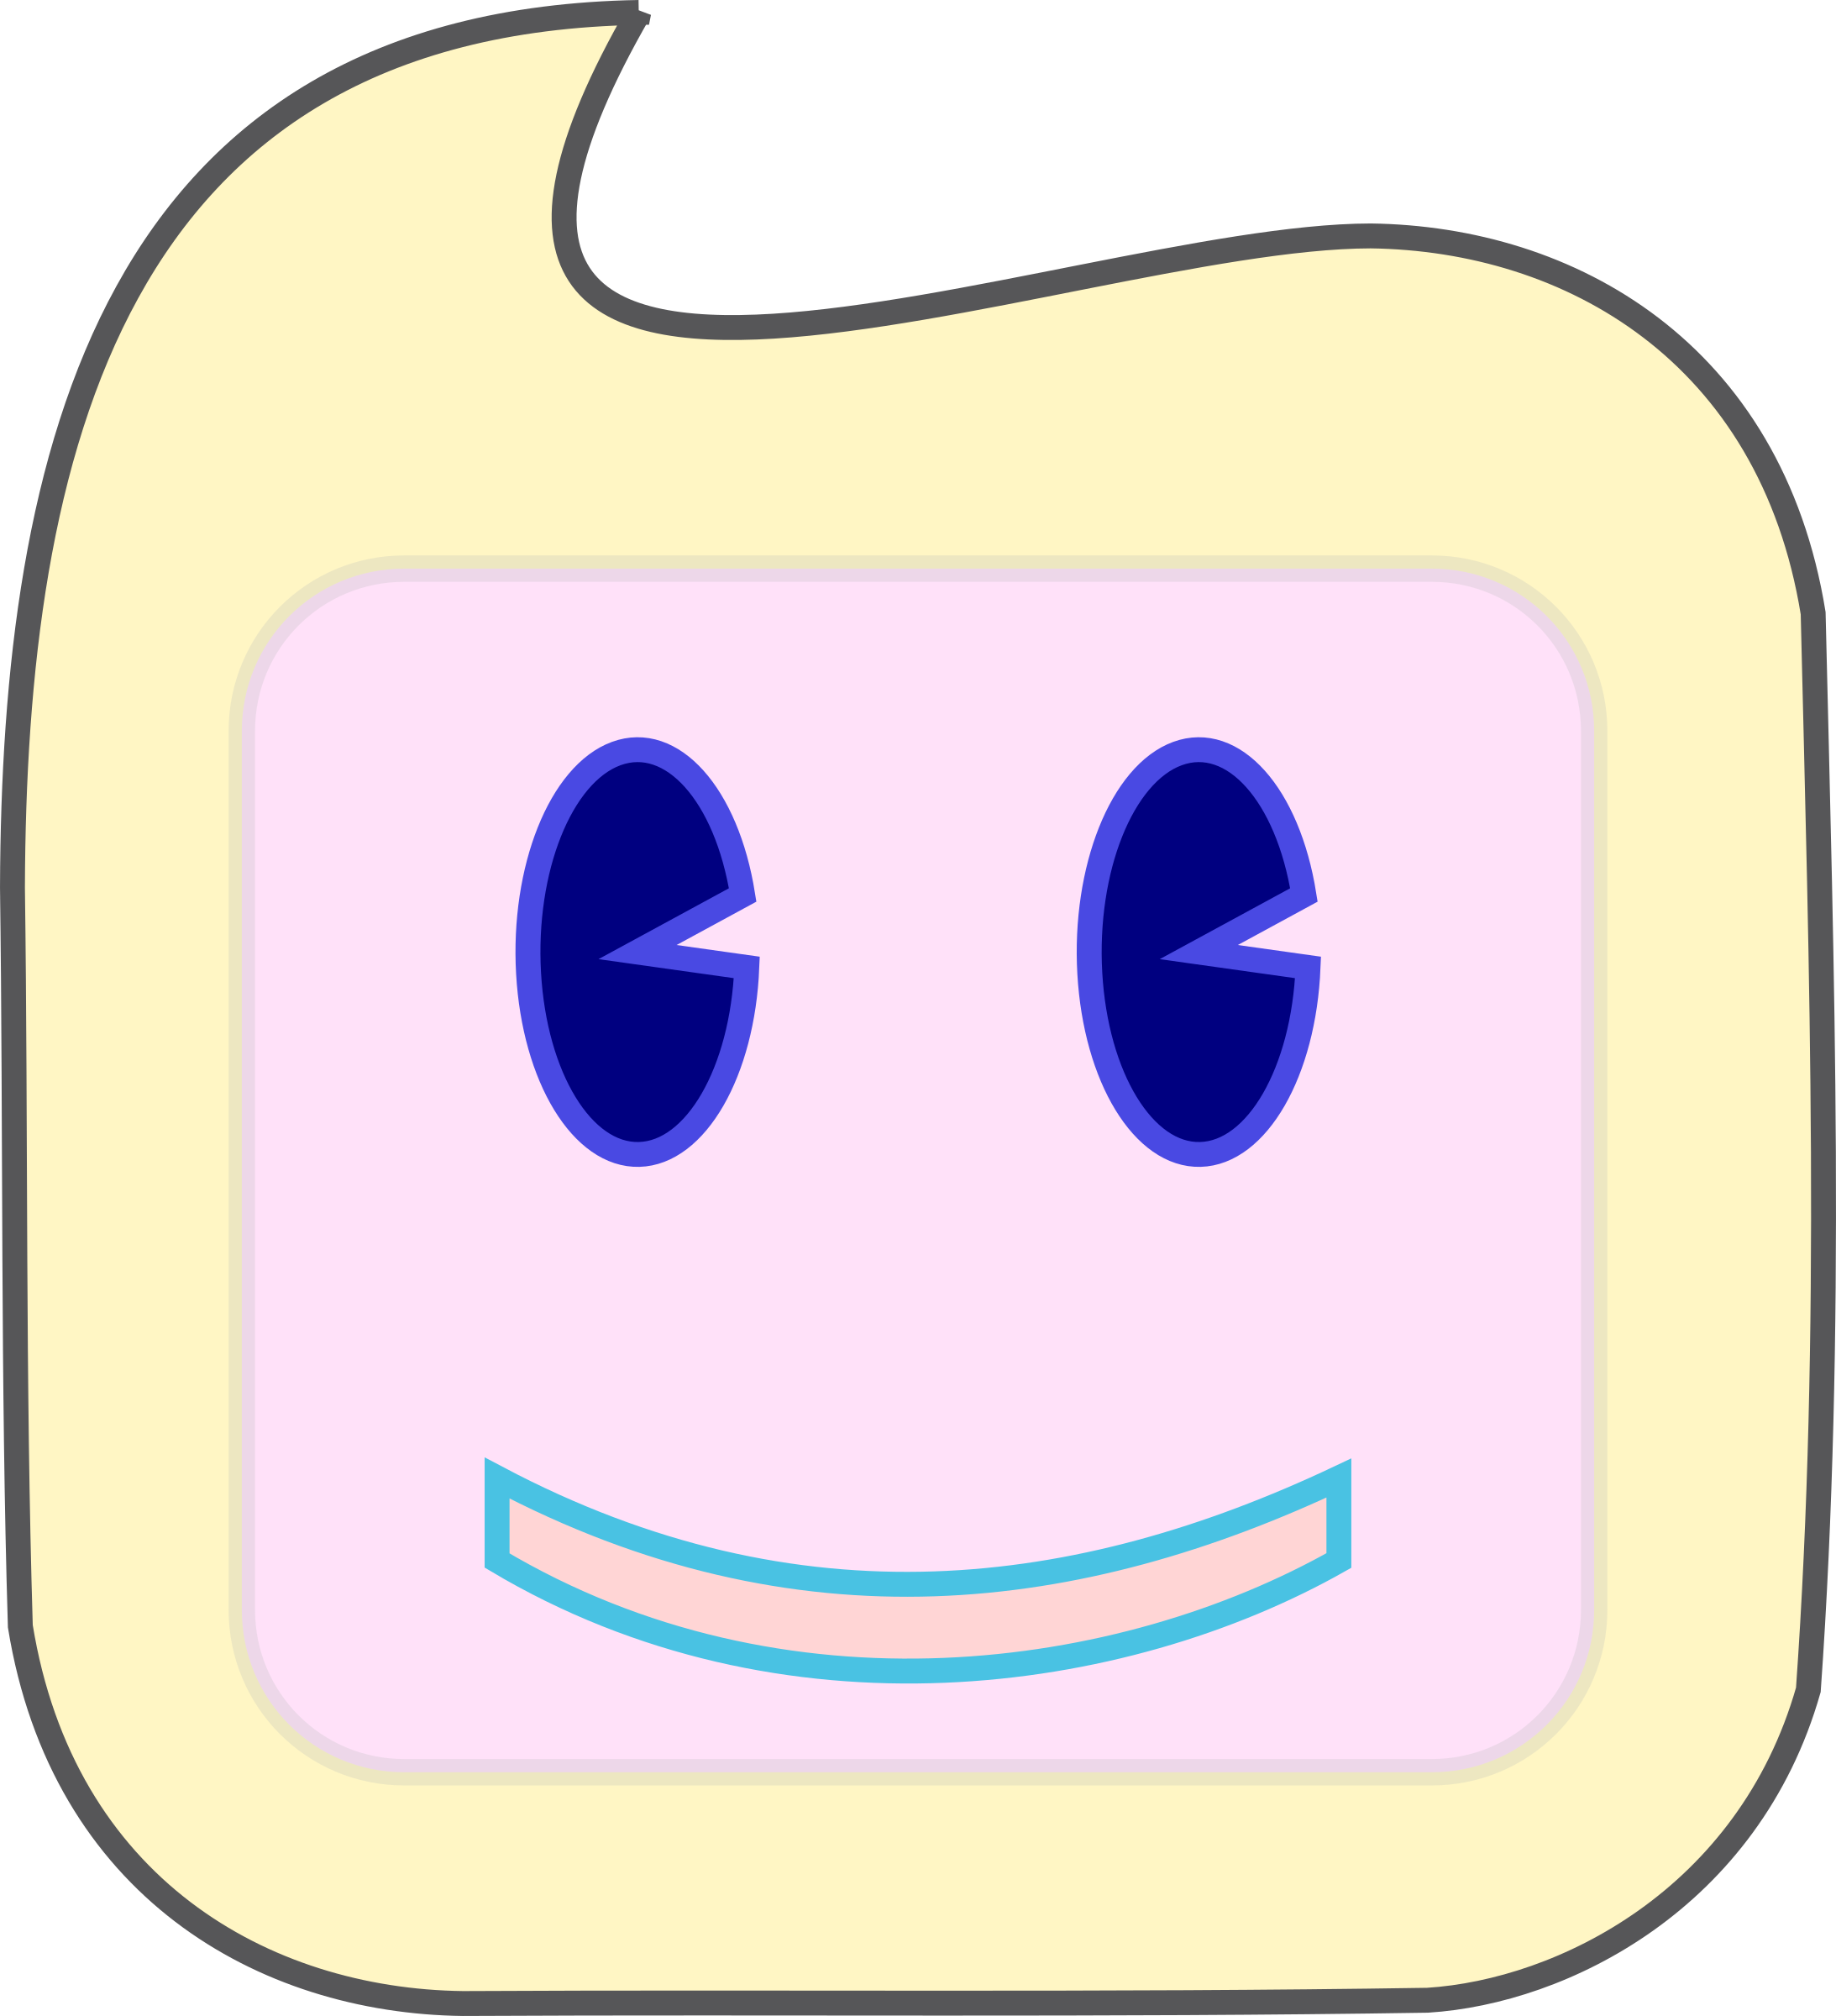 Number 1 clipart face. Big image png